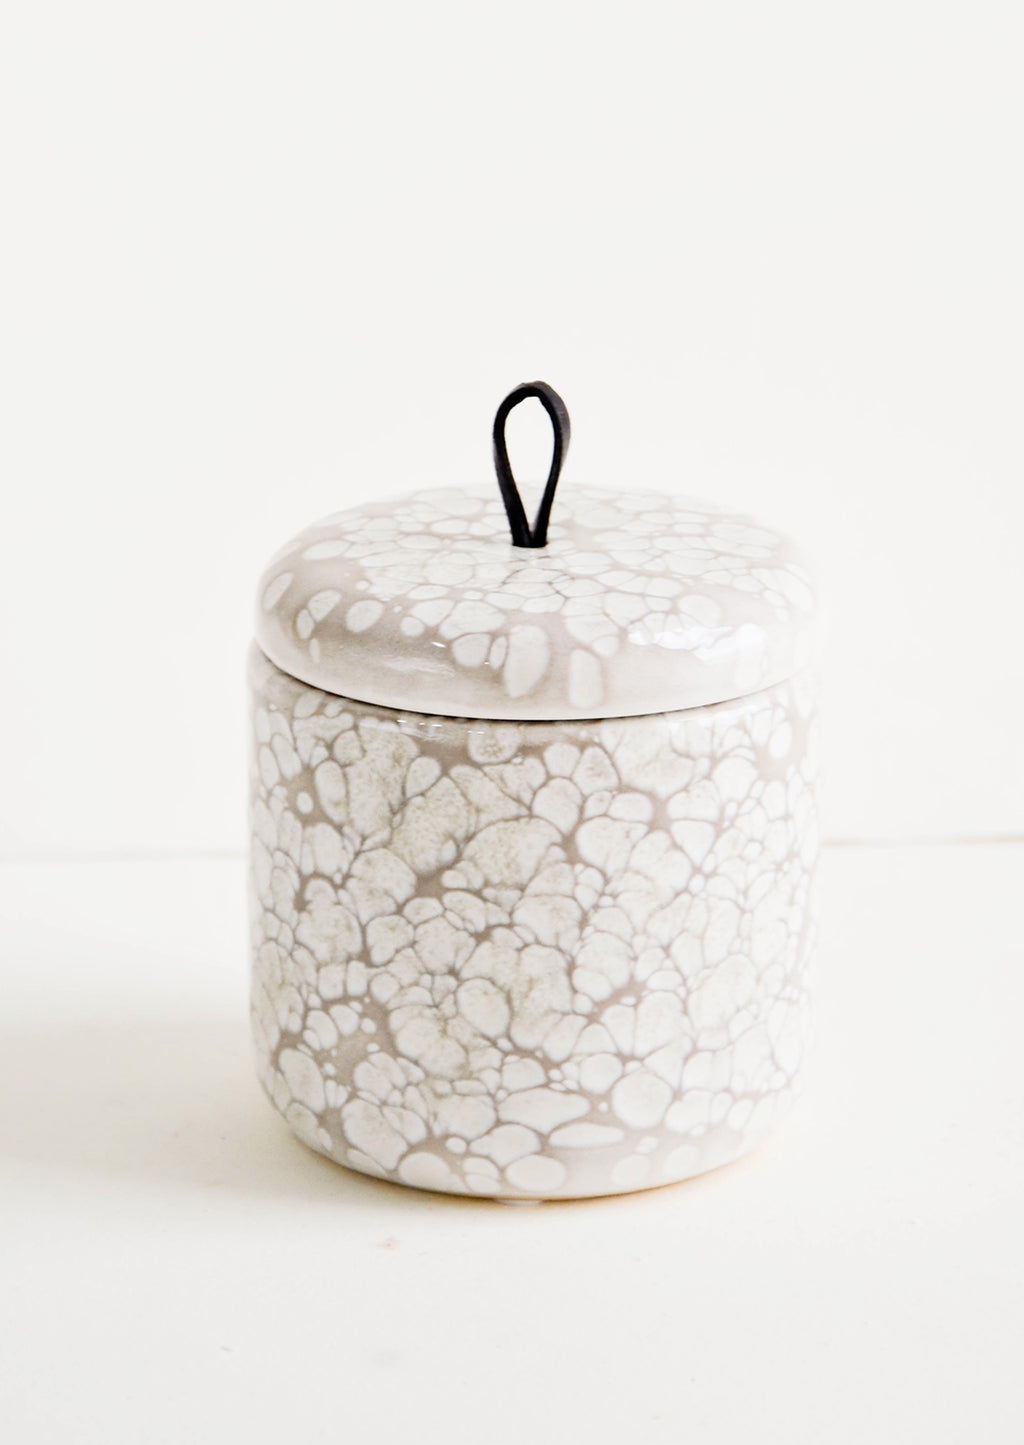 2: Ceramic storage jar in bubbly, glossy grey glaze with black leather pull on lid